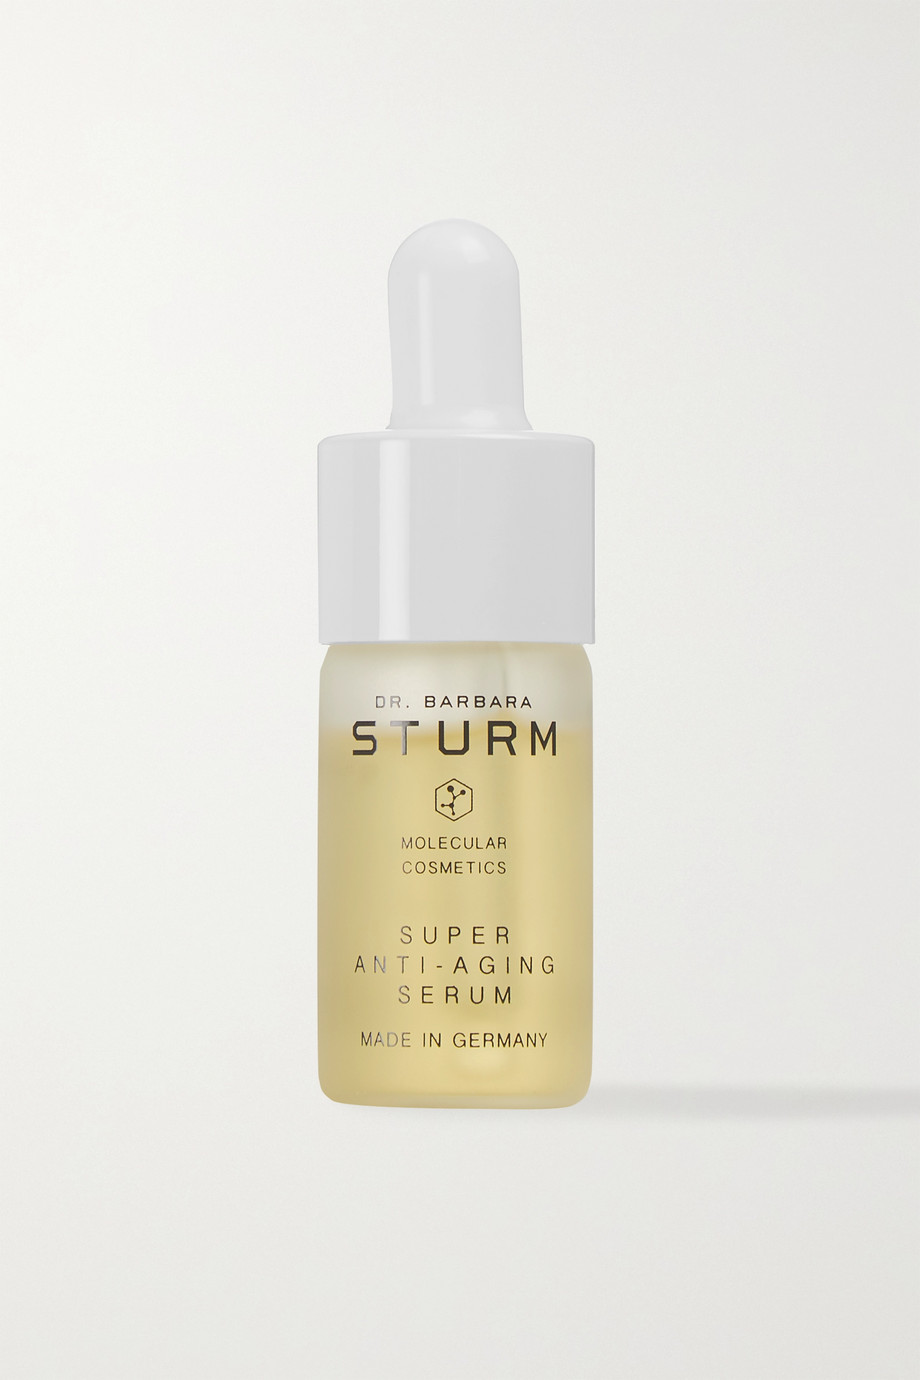 Dr. Barbara Sturm Mini Super Anti-Aging Serum, 10 ml – Serum